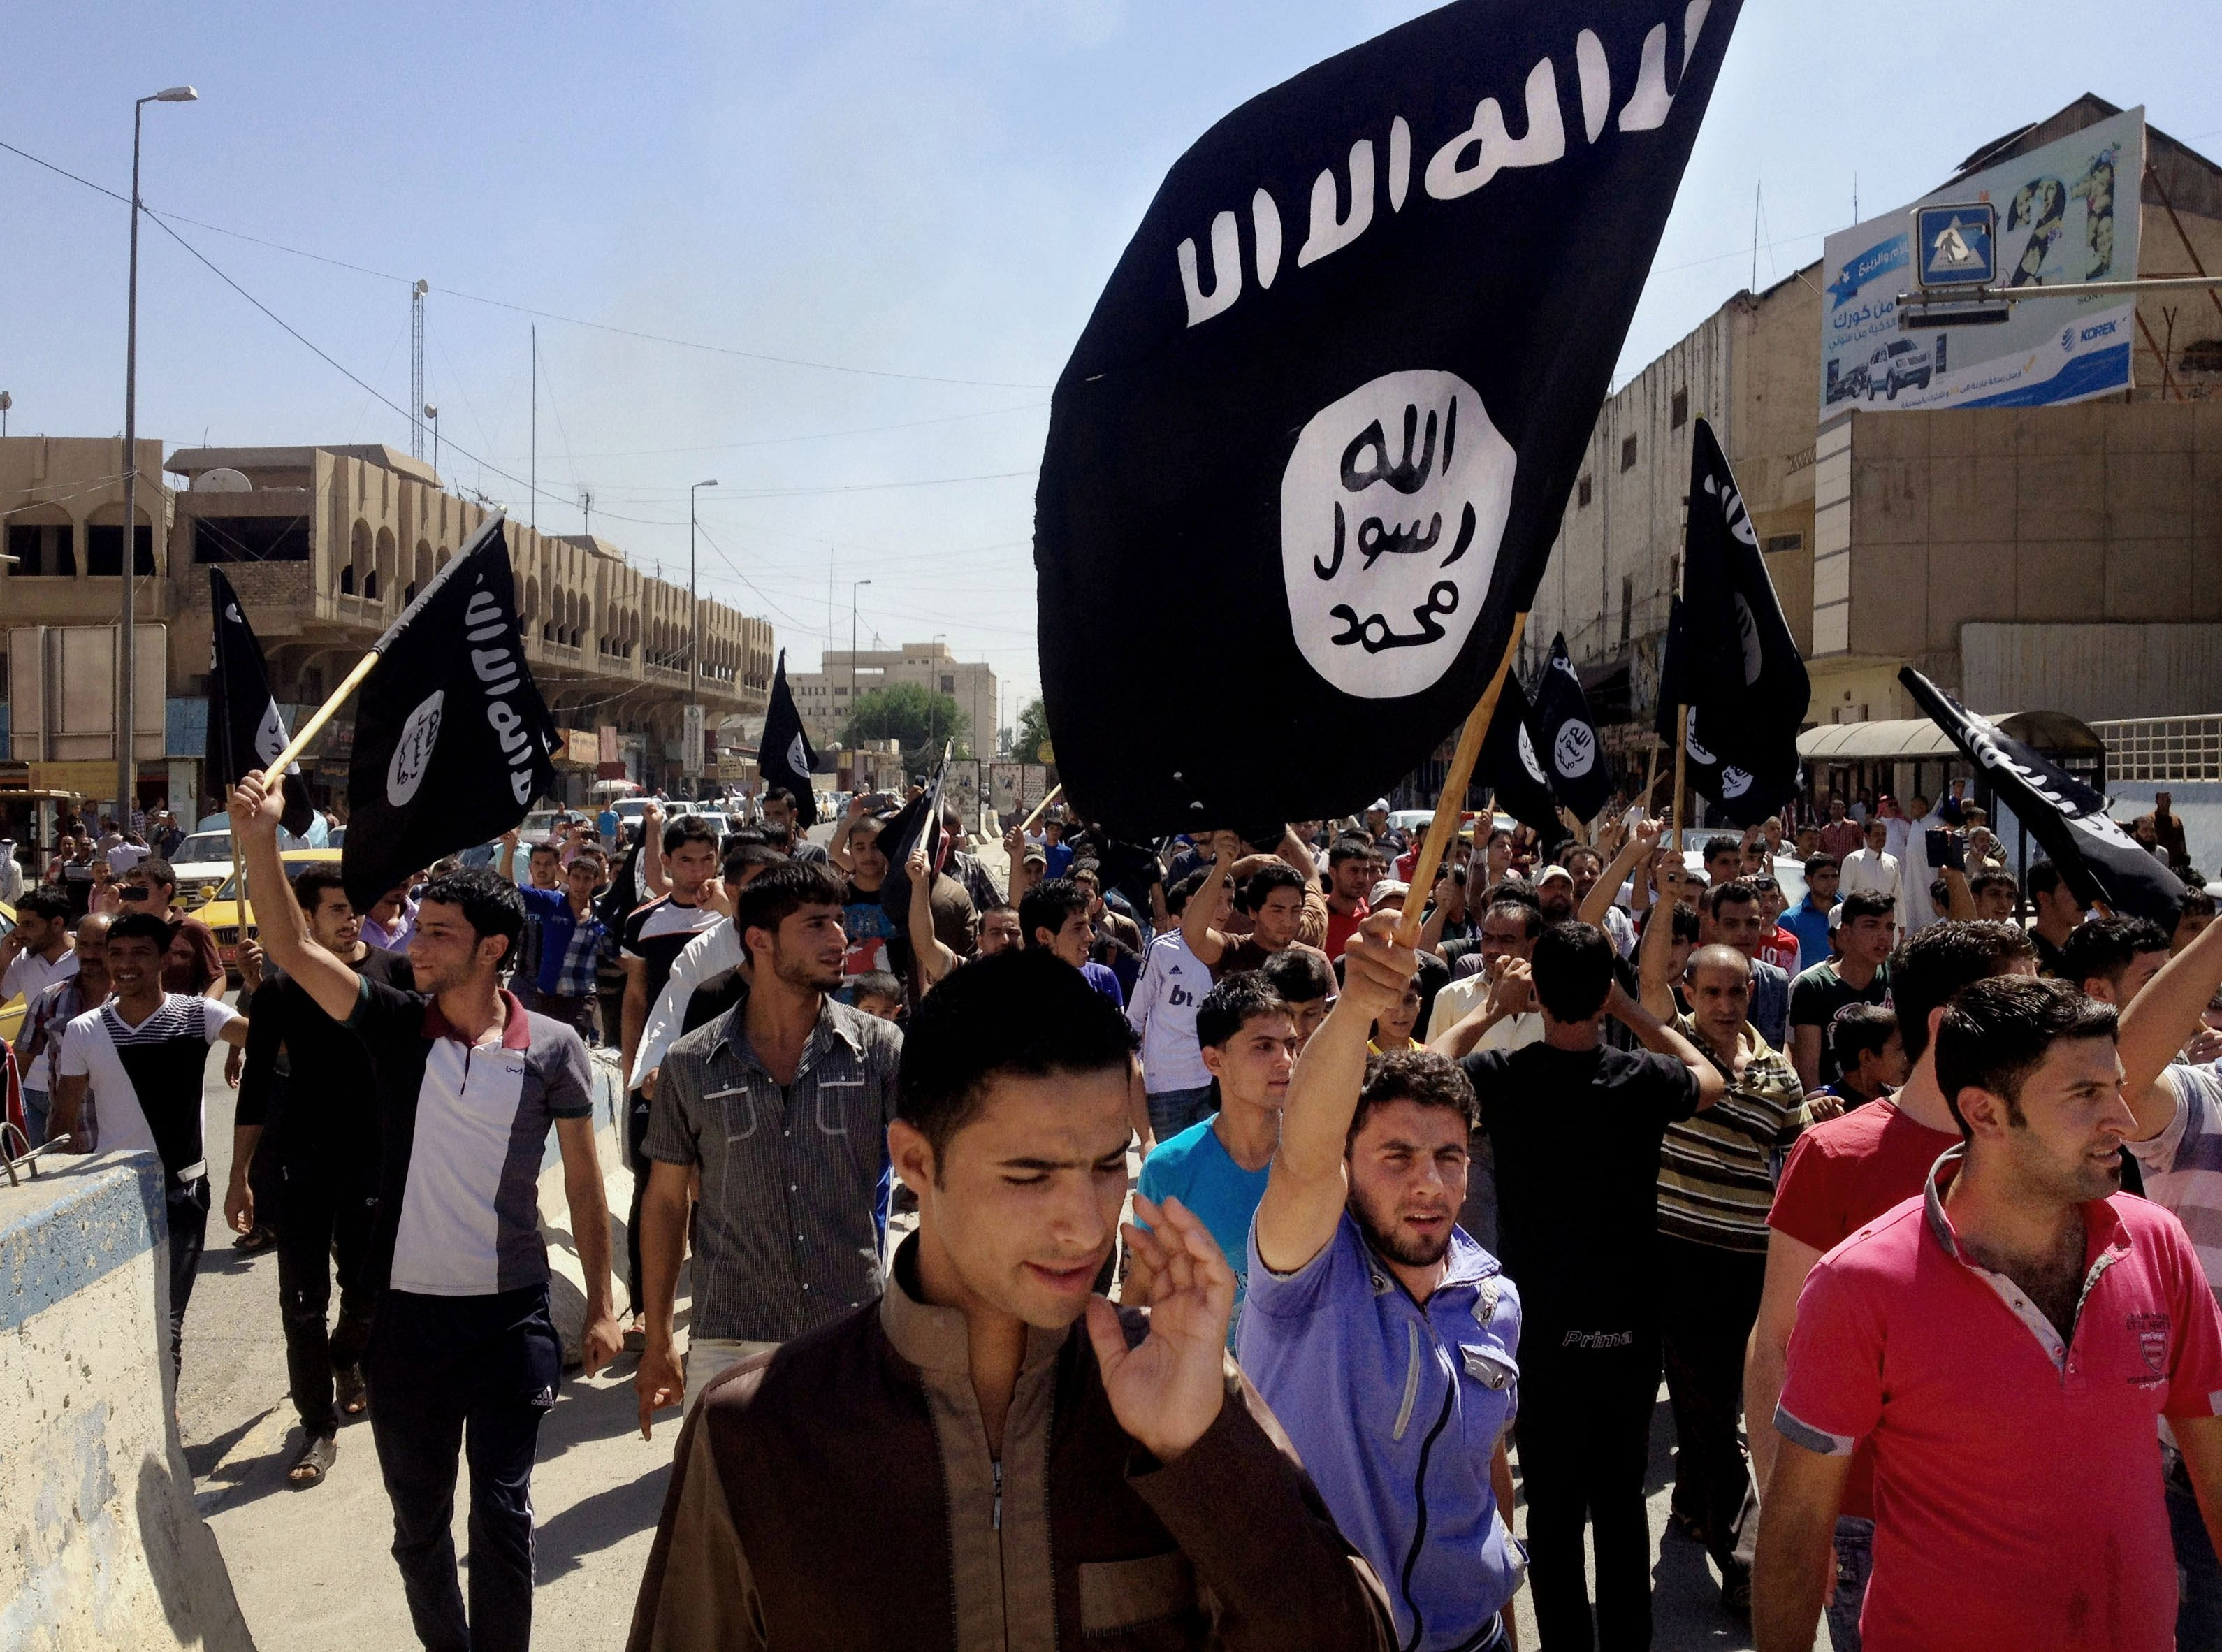 Demonstrators chant pro-Islamic State group slogans as they carry the group's flags in front of the provincial government headquarters in Mosul, Iraq on June 16, 2014.